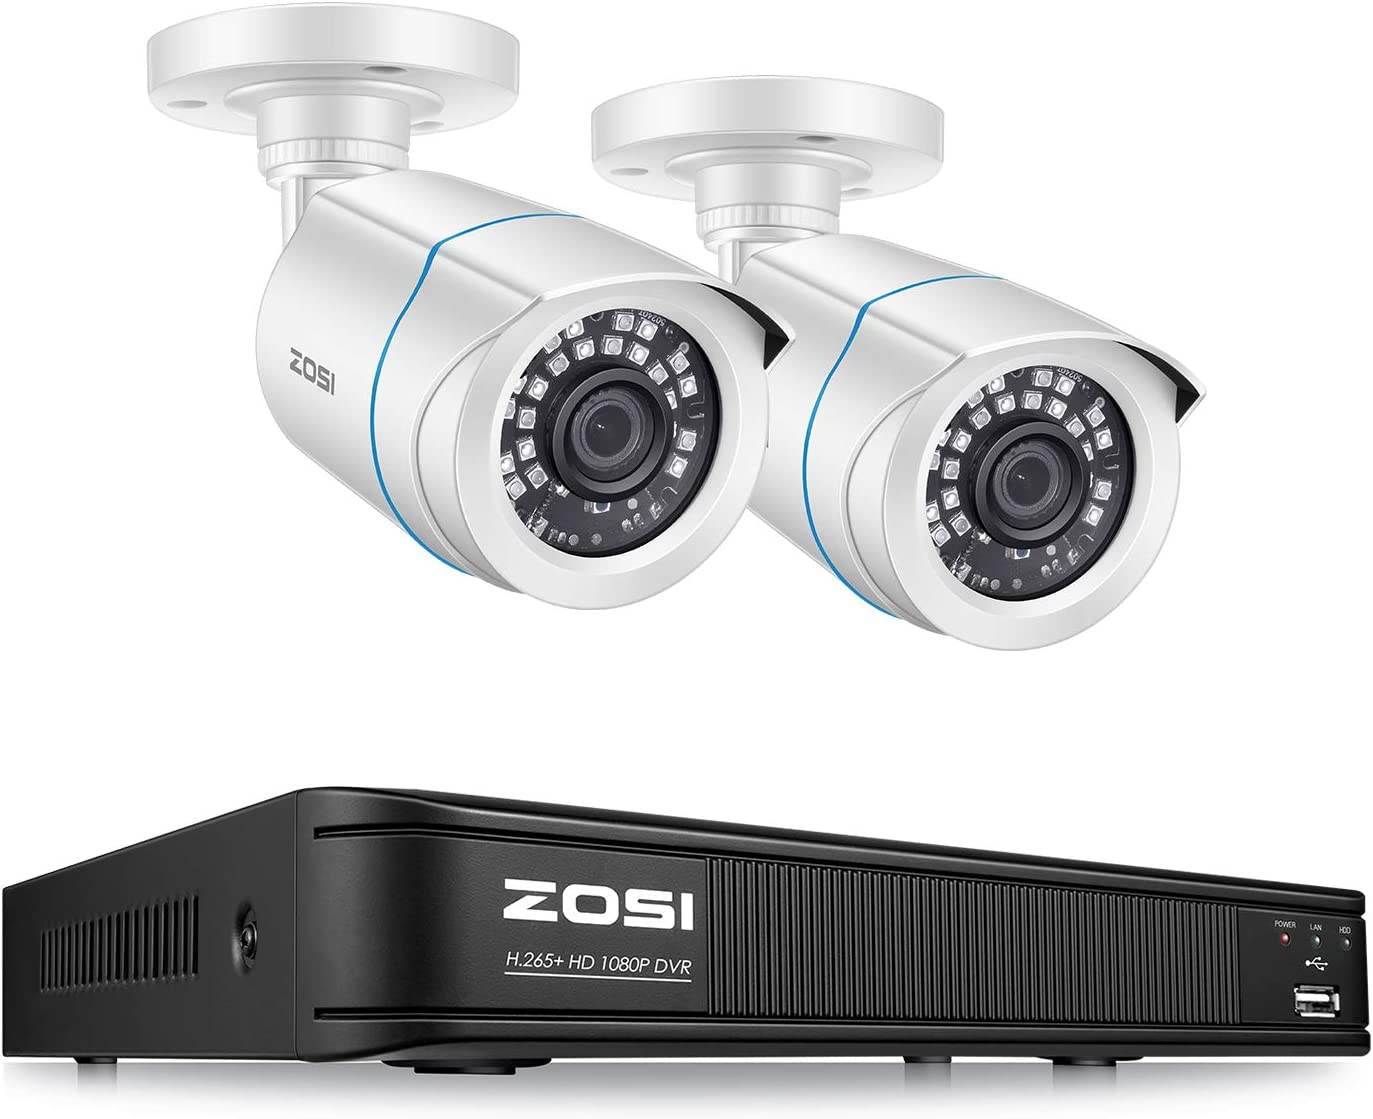 ZOSI H.265+ 1080P Home Security Camera System, 4 Channel Security DVR Recorder and (2) 1080p Weatherproof Bullet Camera Outdoor/Indoor, Remote Access, Motion Detection (No Hard Drive)